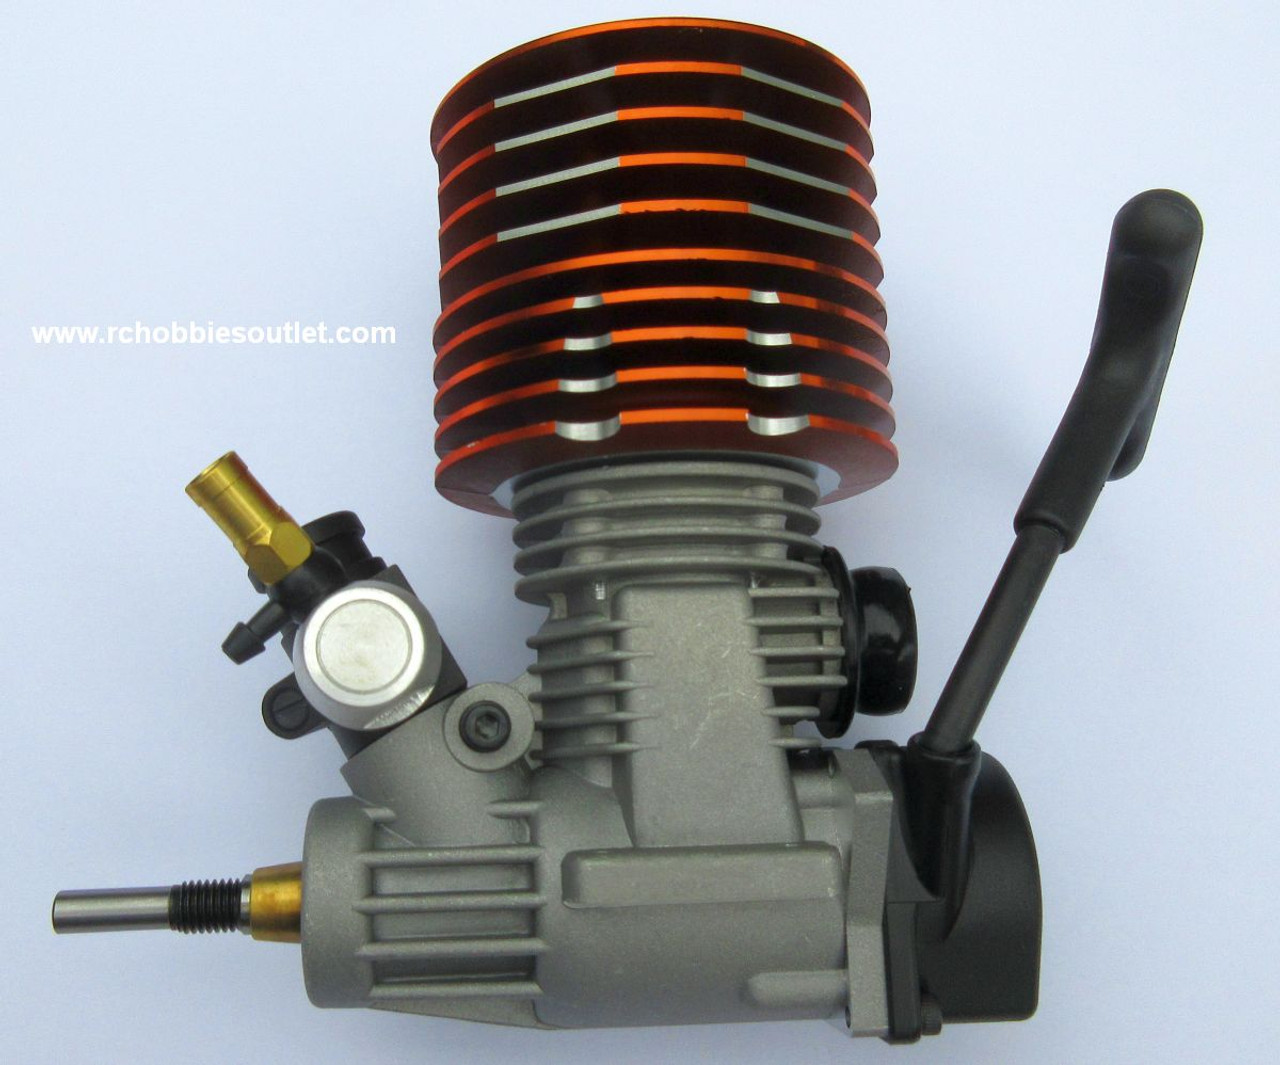 X26 Nitro RC Engine 4.25cc for 1/8 Scale with Pull-out Carburetor HSP Redcar